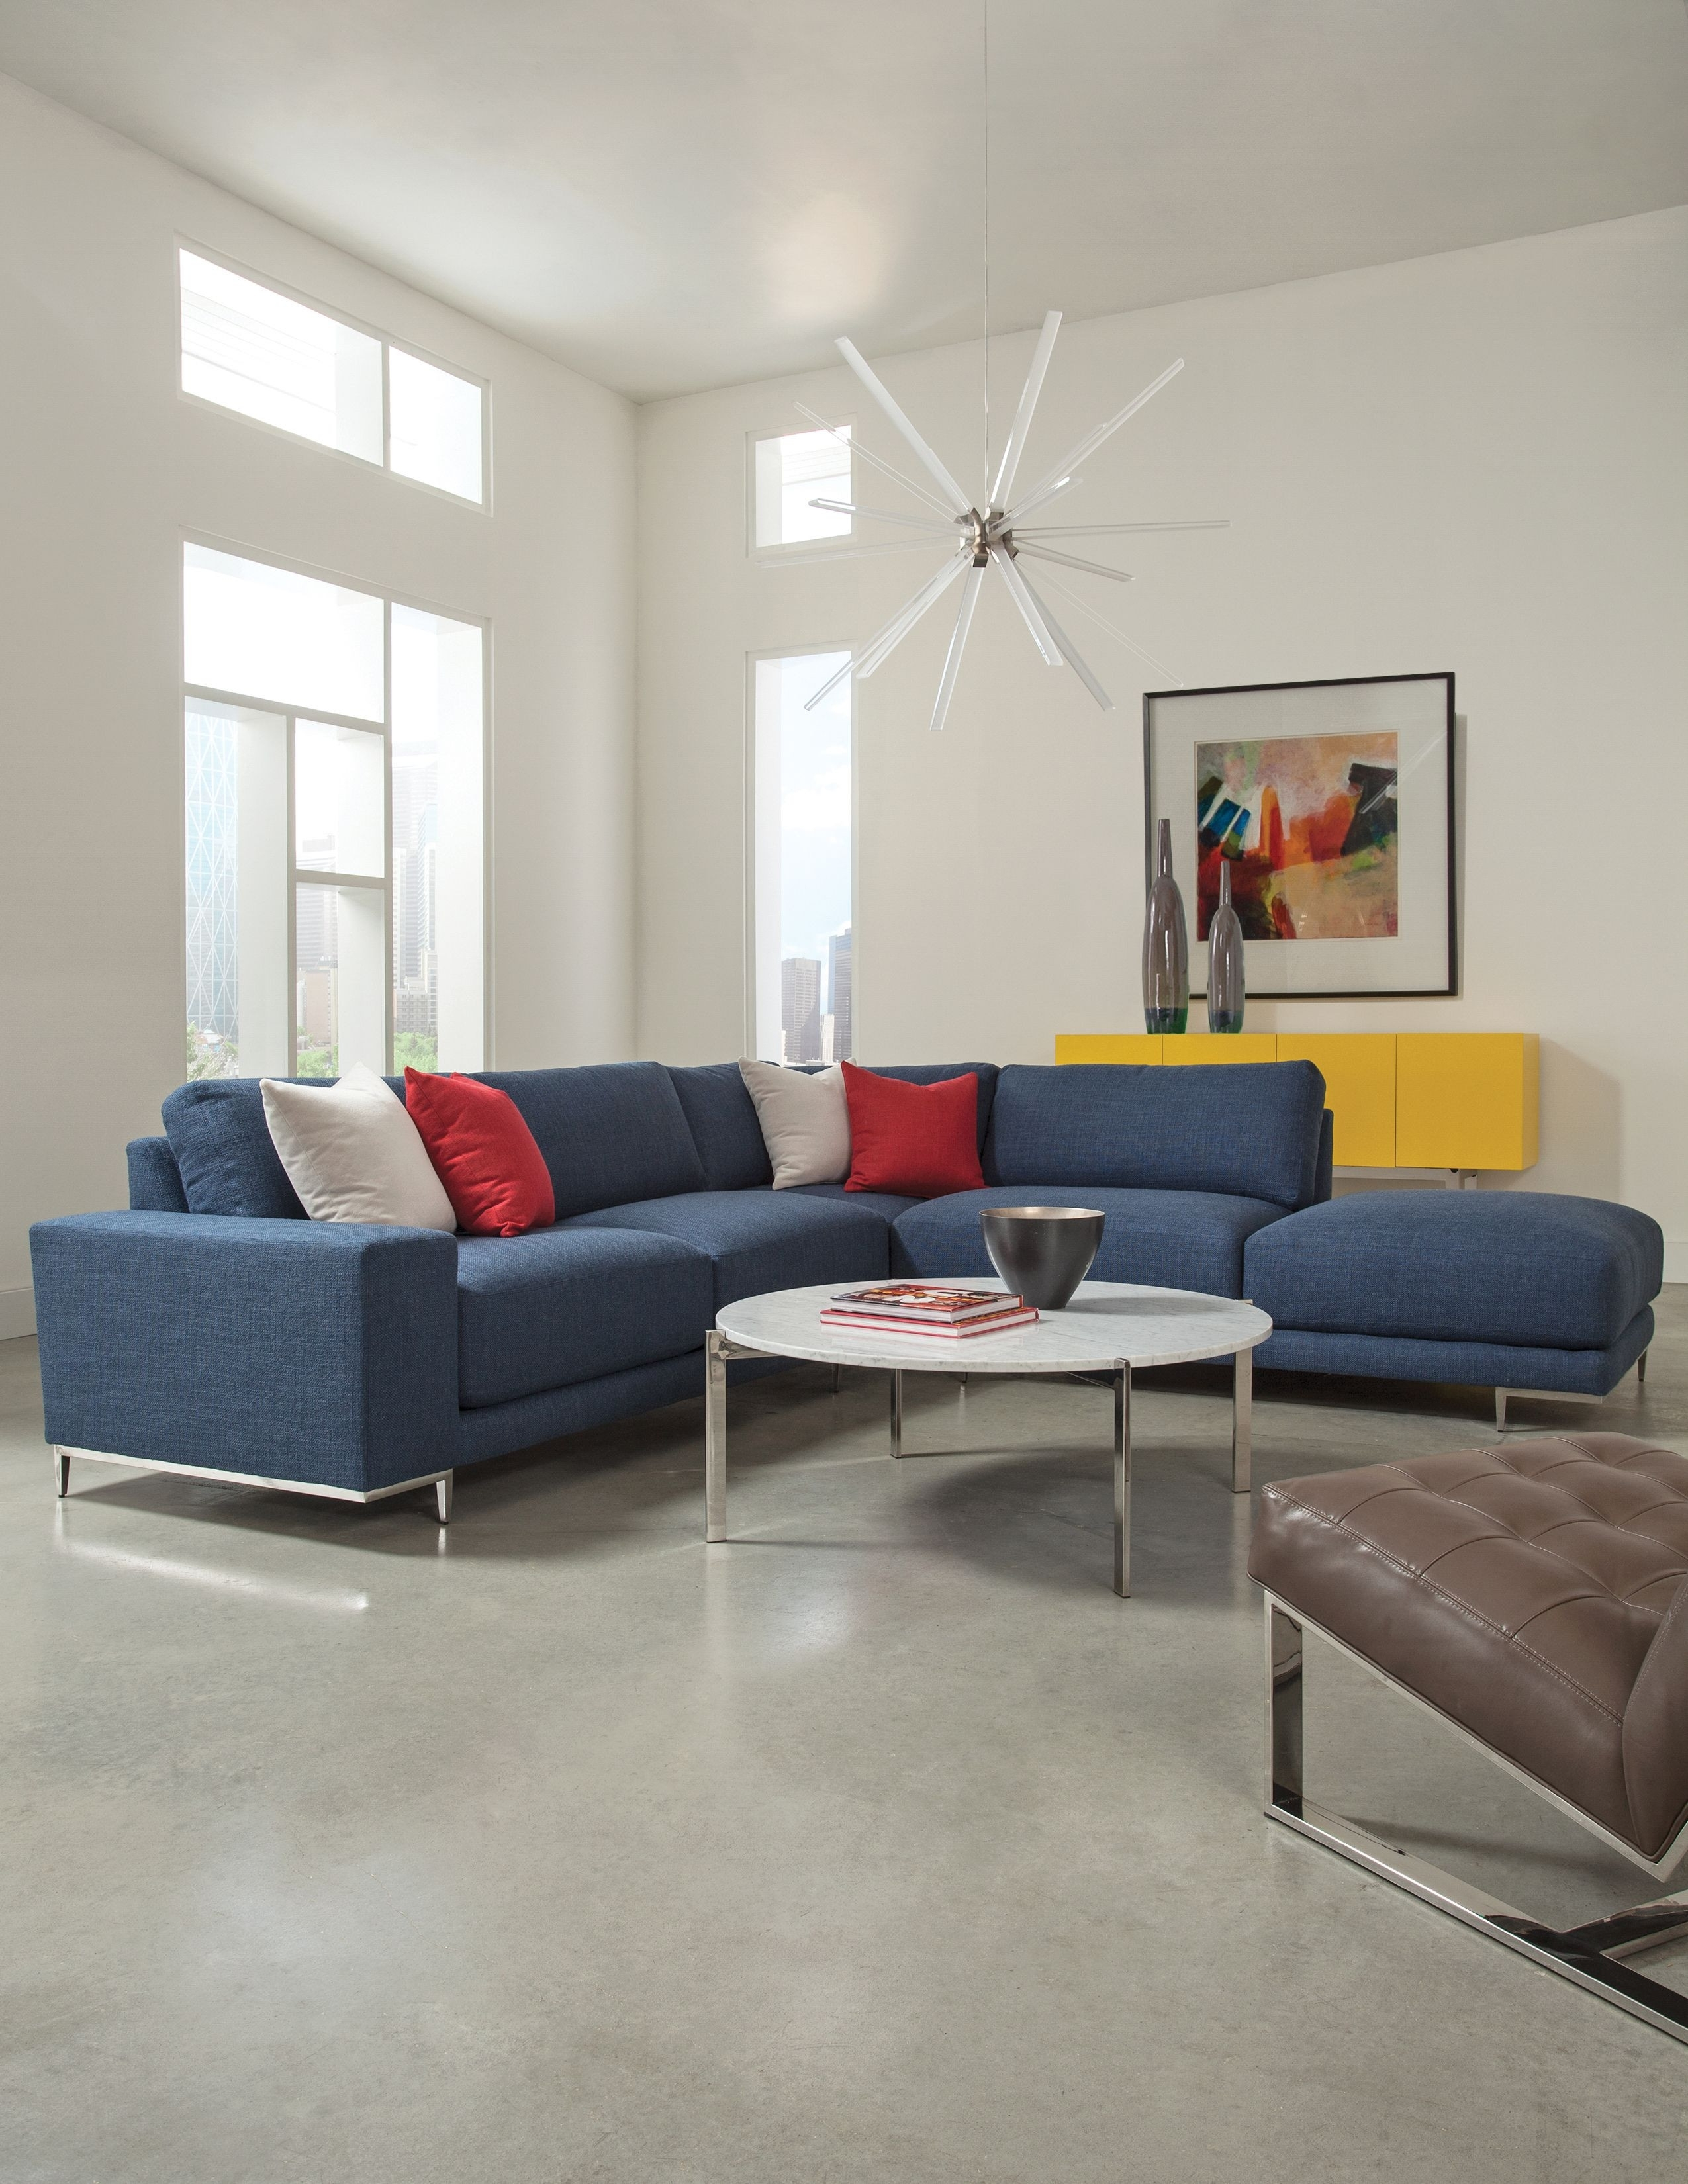 Hangover Modular Sectional Sofa With Drop In Cocktail Table And Milo Pertaining To Avery 2 Piece Sectionals With Raf Armless Chaise (Image 16 of 25)